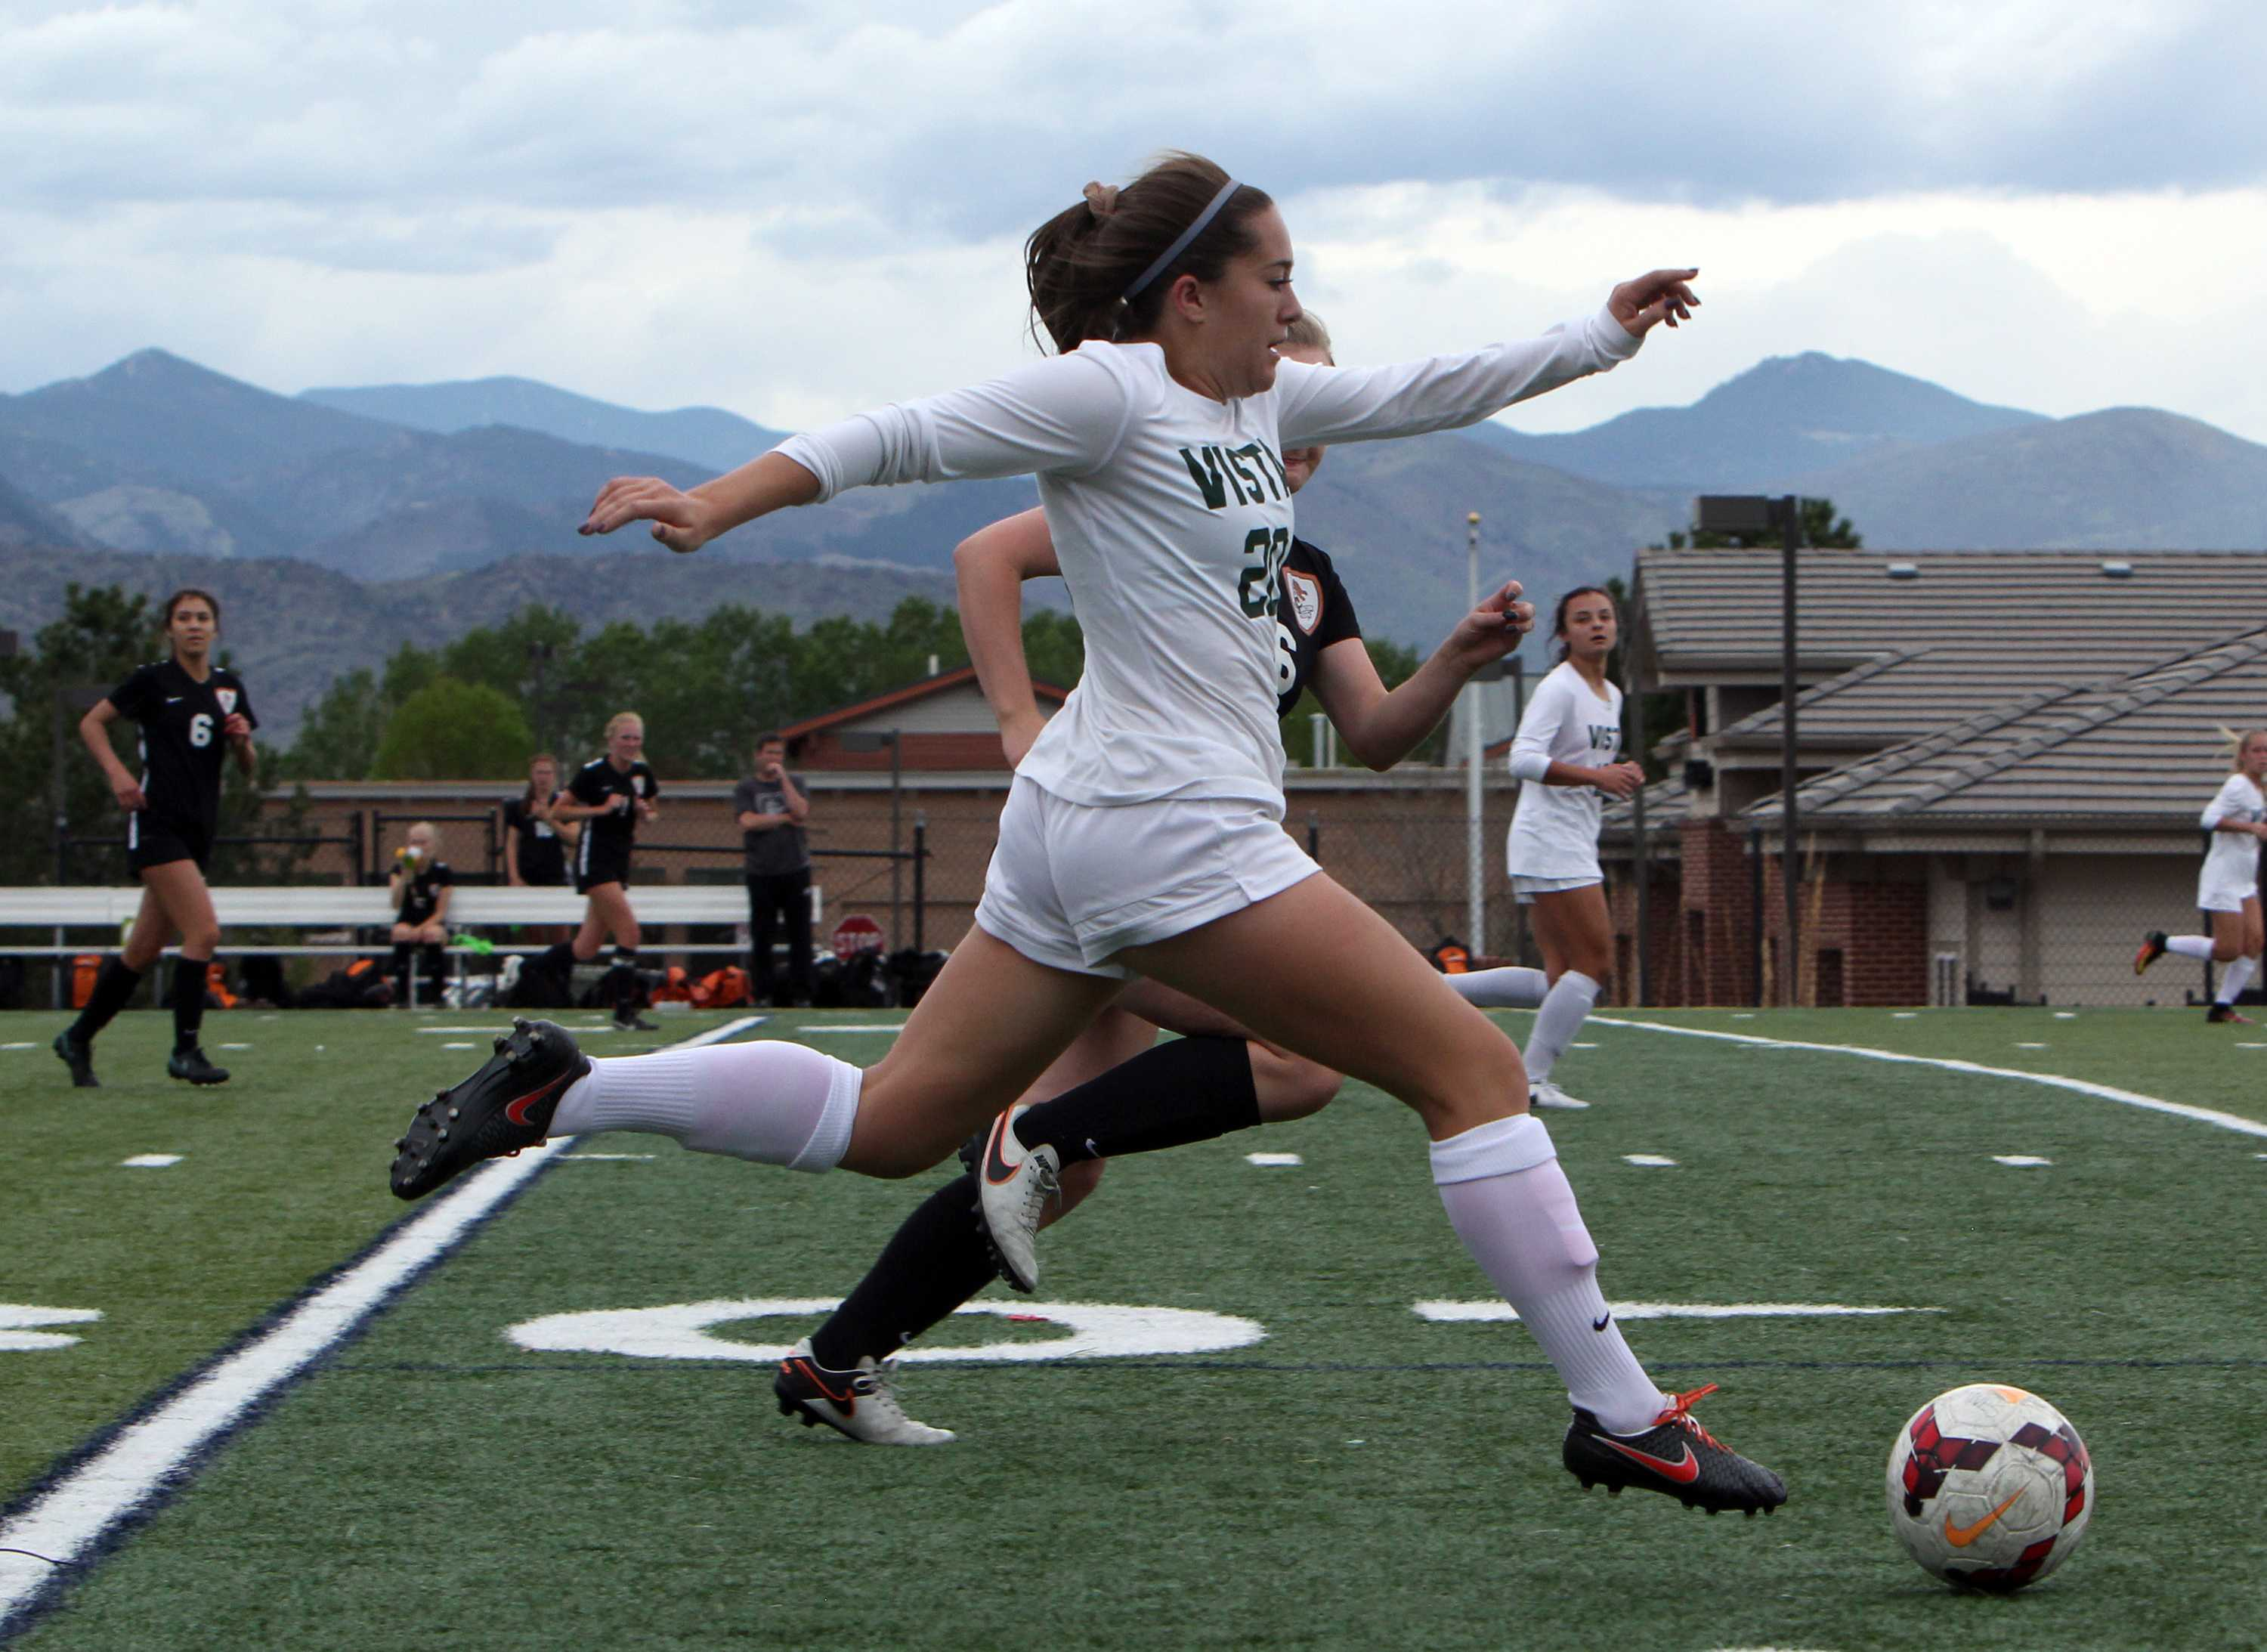 PHOTOS: Womens Varsity Soccer vs. Grand Junction